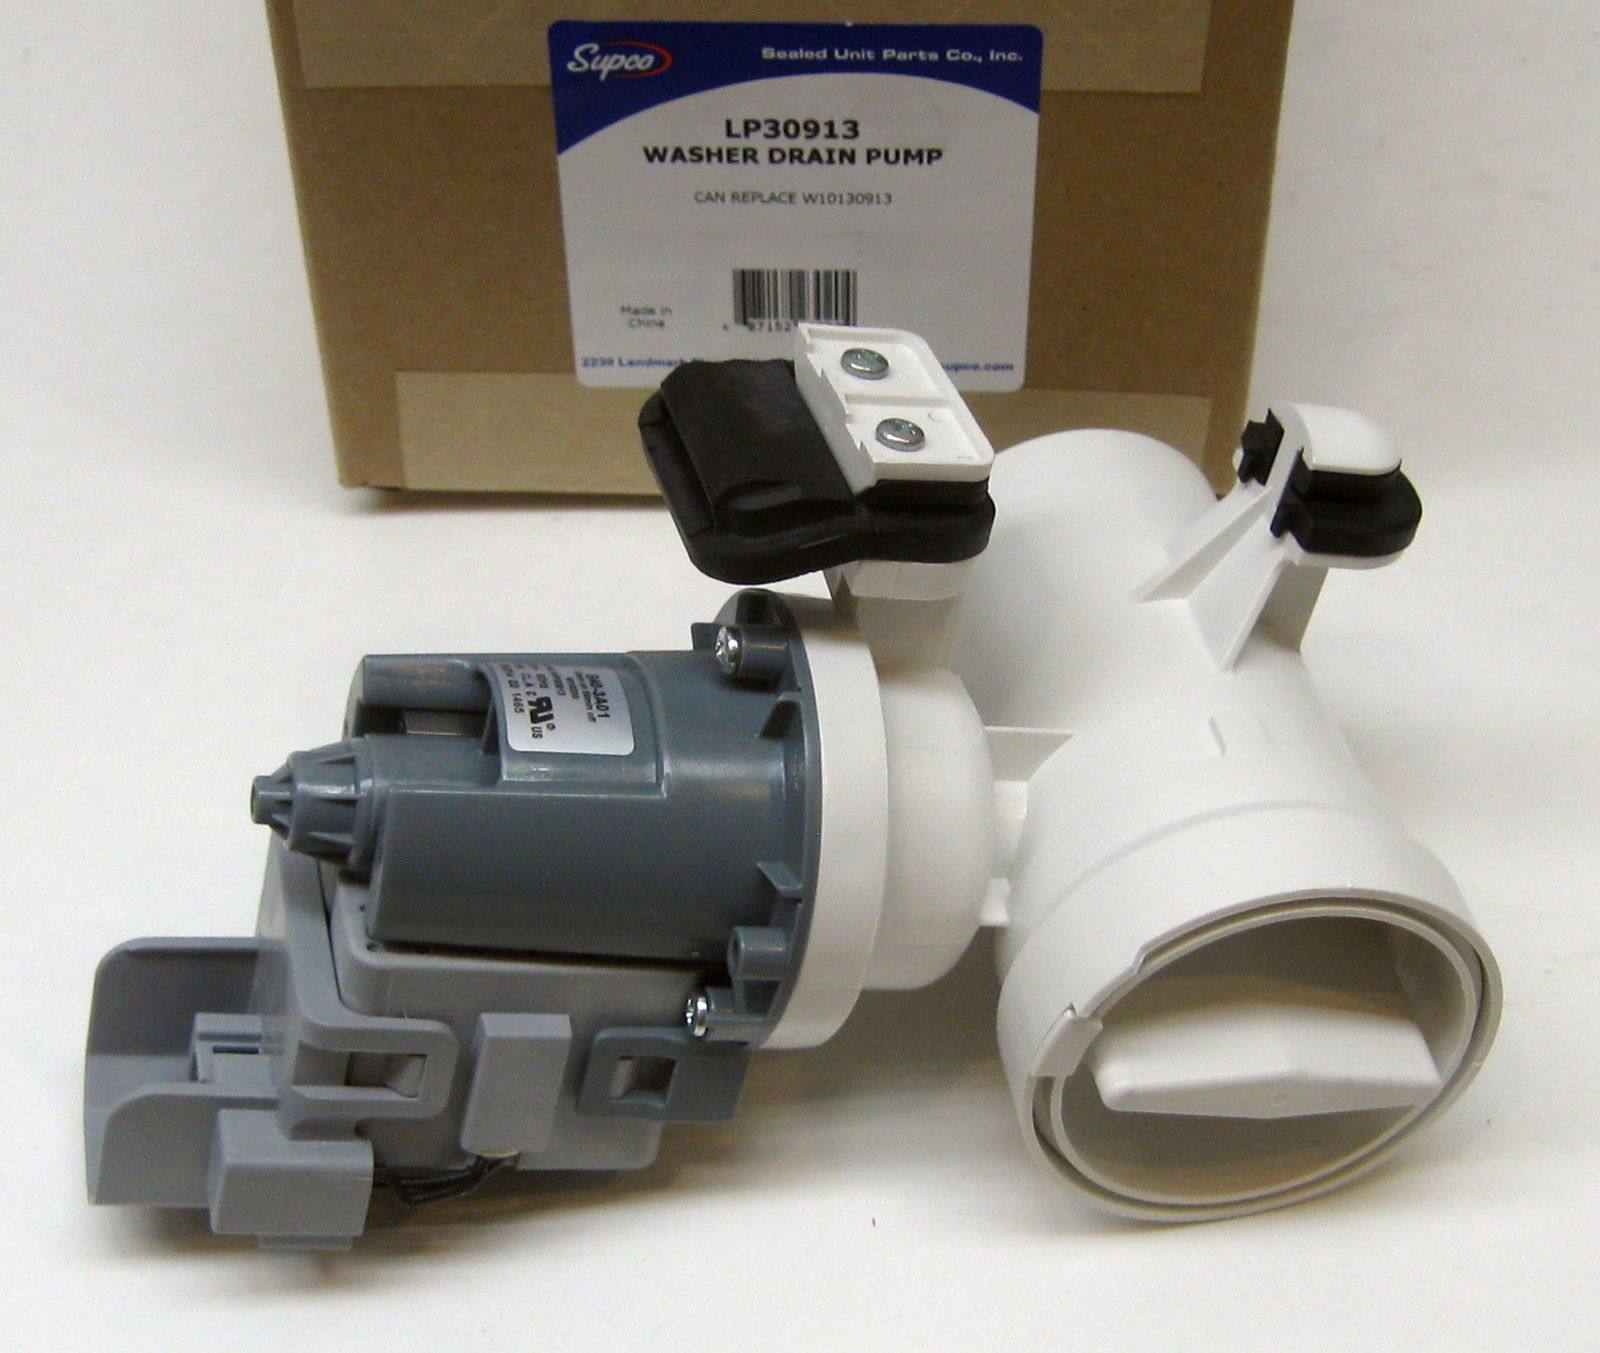 Washing Machine Drain Pump For Whirlpool W10130913